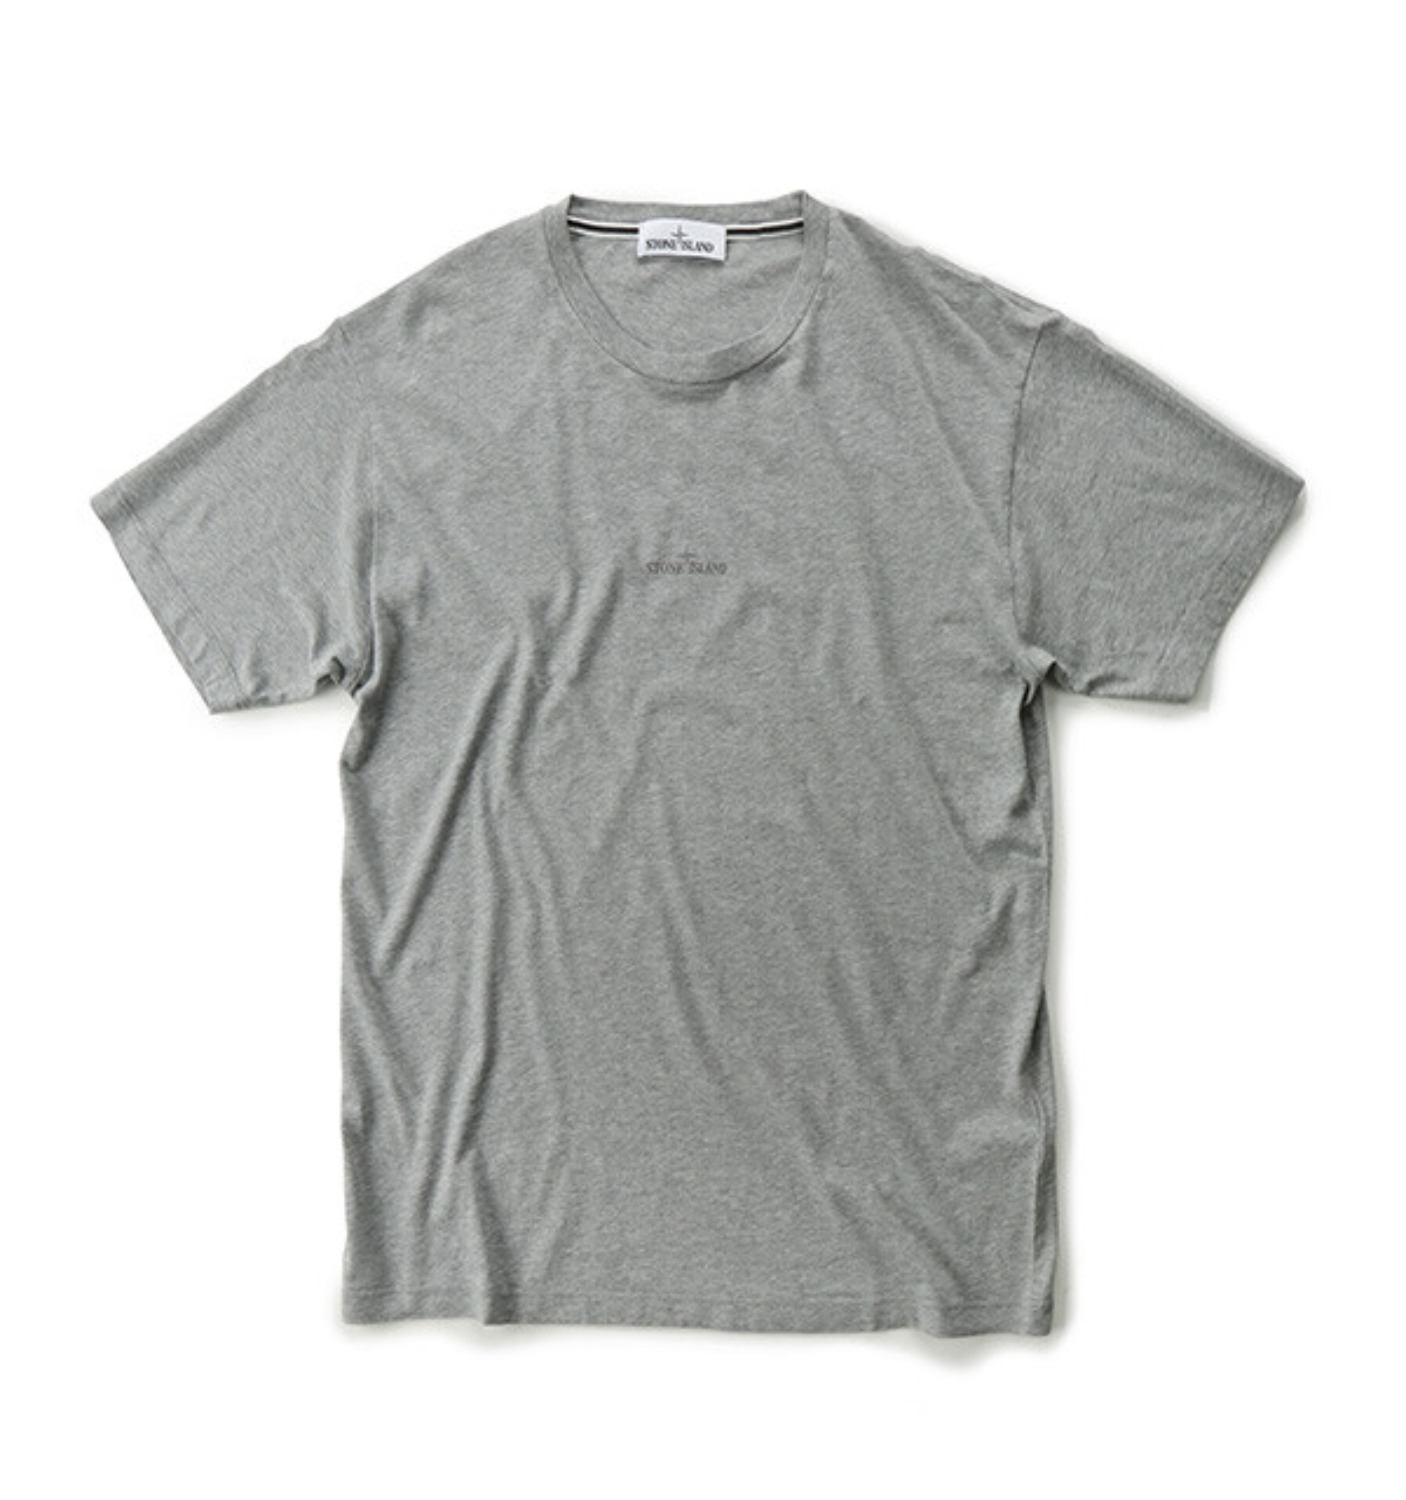 GRAPHIC EIGHT JERSEY T SHIRT GREY